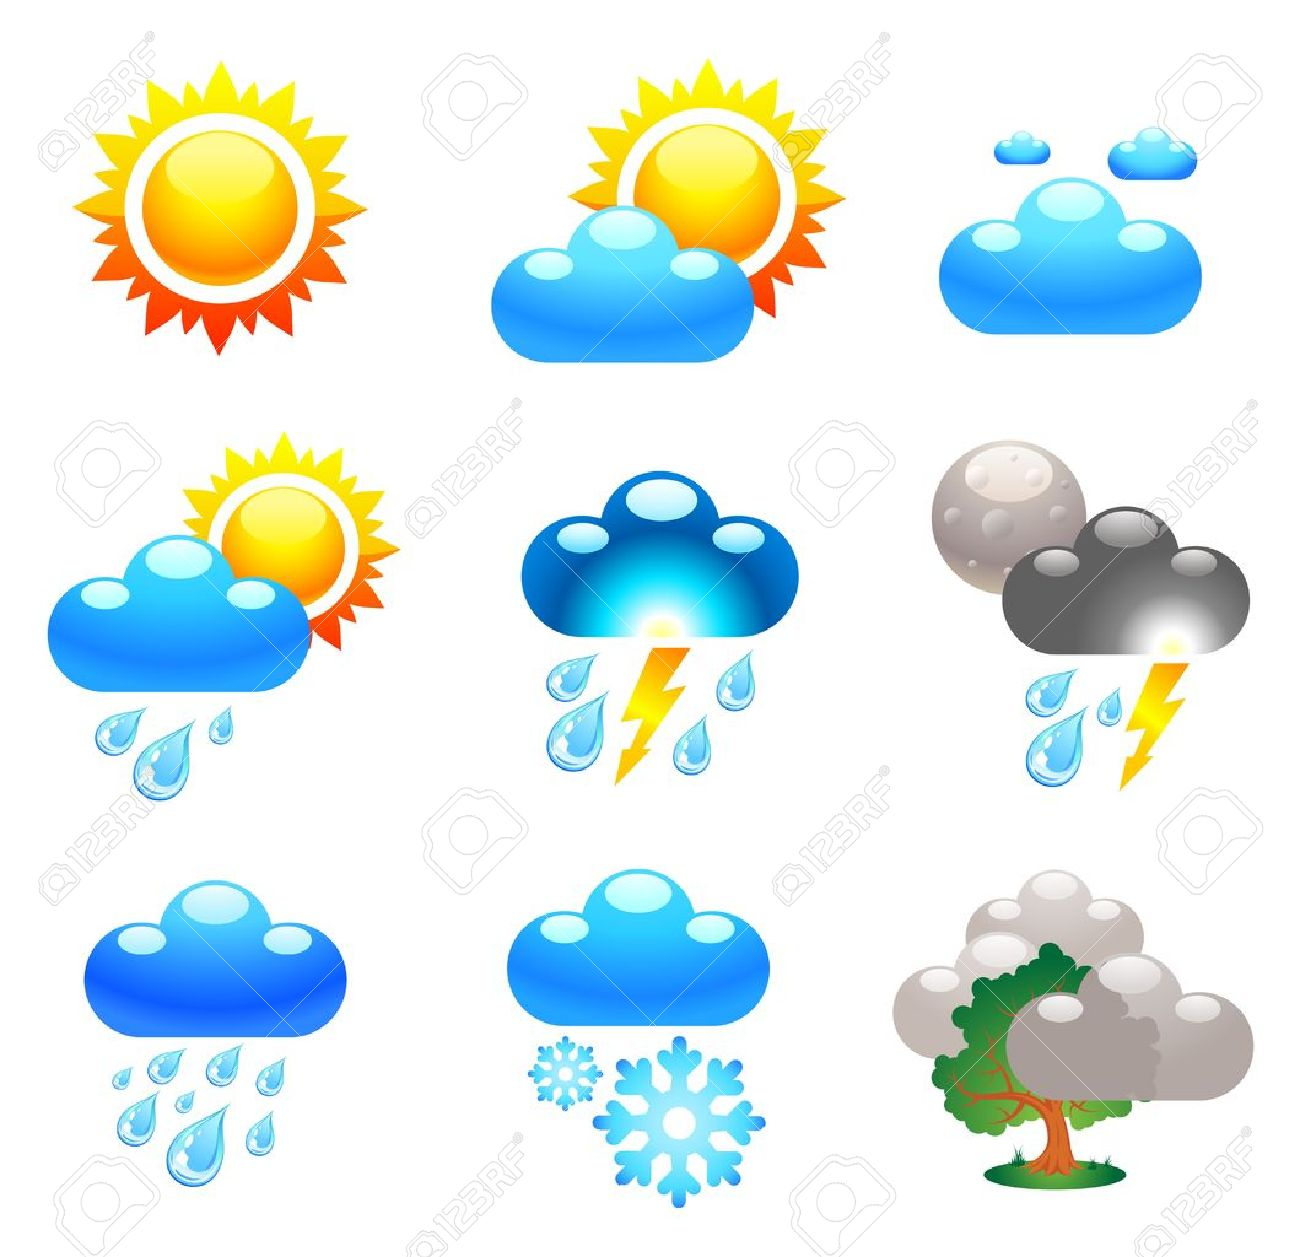 bb3a00815c Symbols Which Represent Weather Conditions Royalty Free Cliparts ...